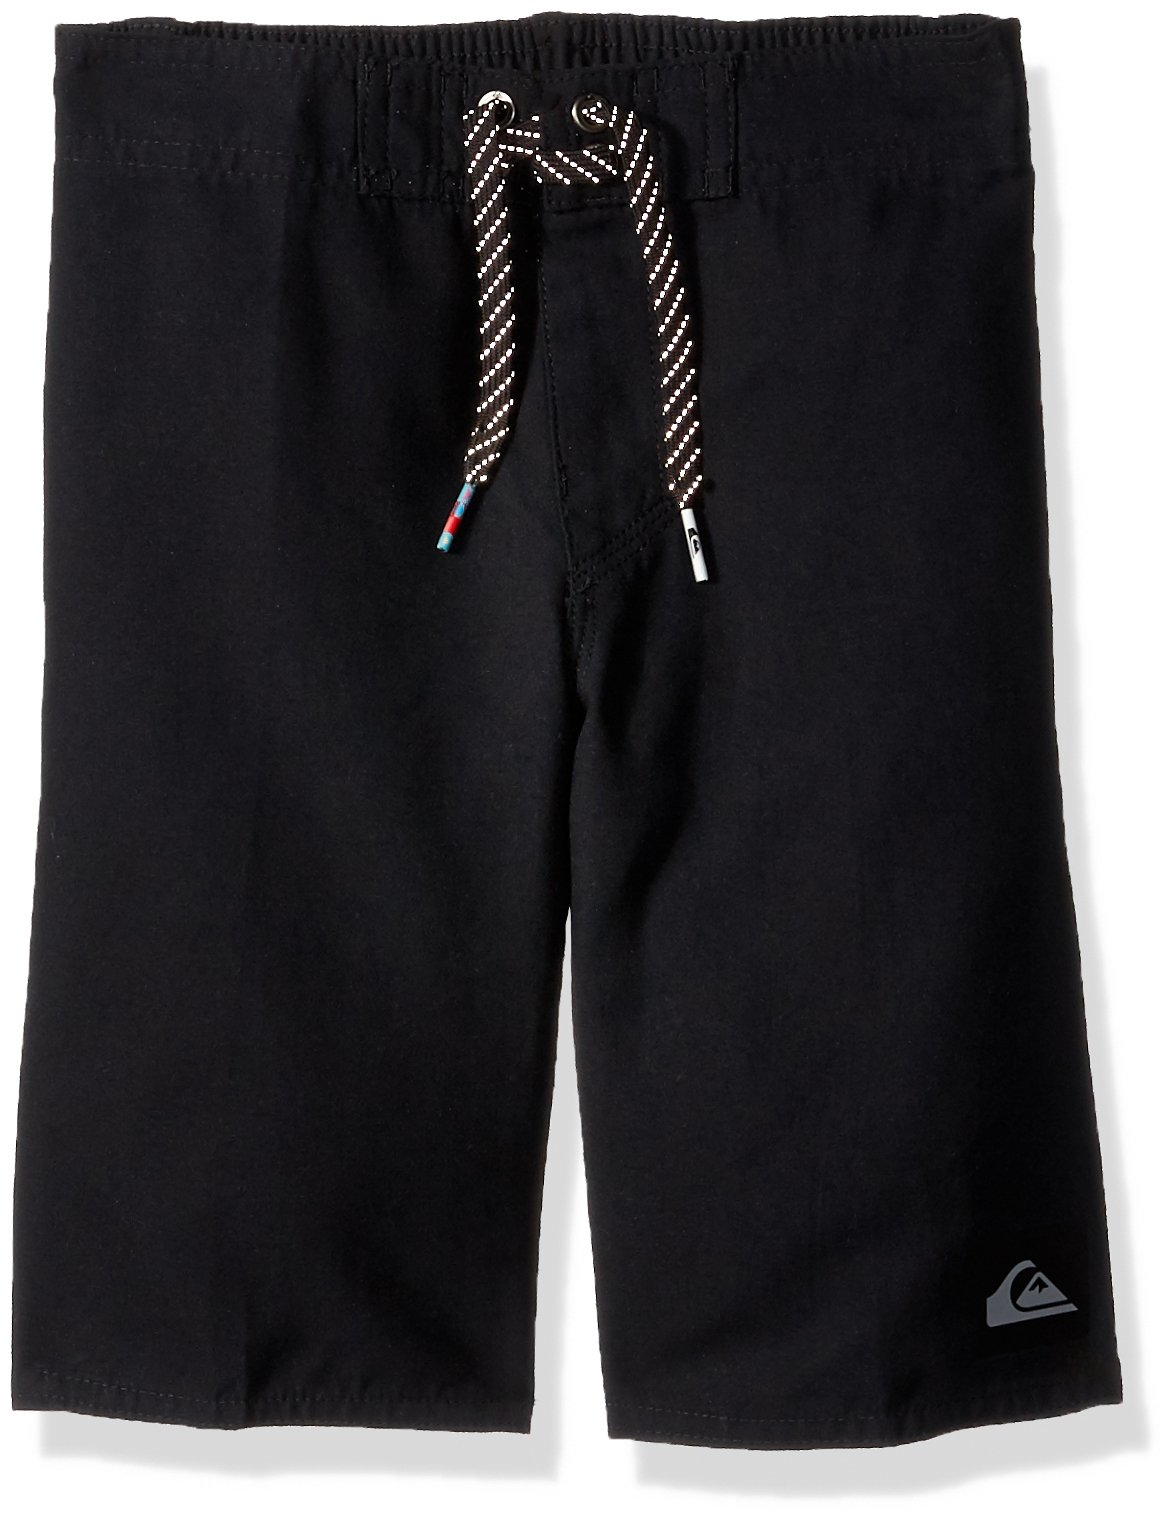 Quiksilver Little Boys' Highline Kaimana Kids Swim Trunks, Black, 7X